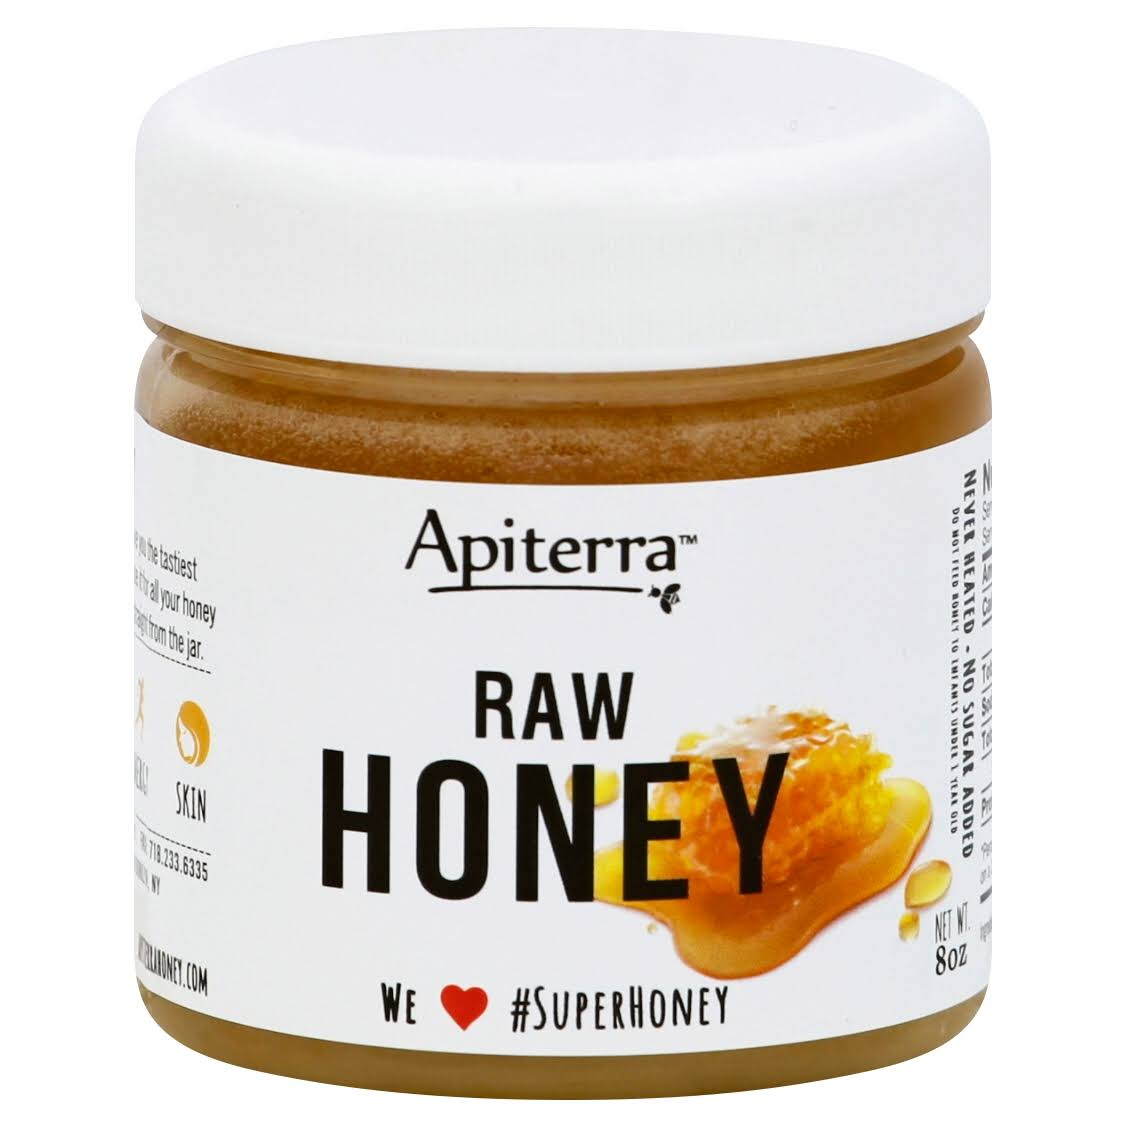 Apiterra Gluten Free Original Superfood Honey - Raw, 8oz